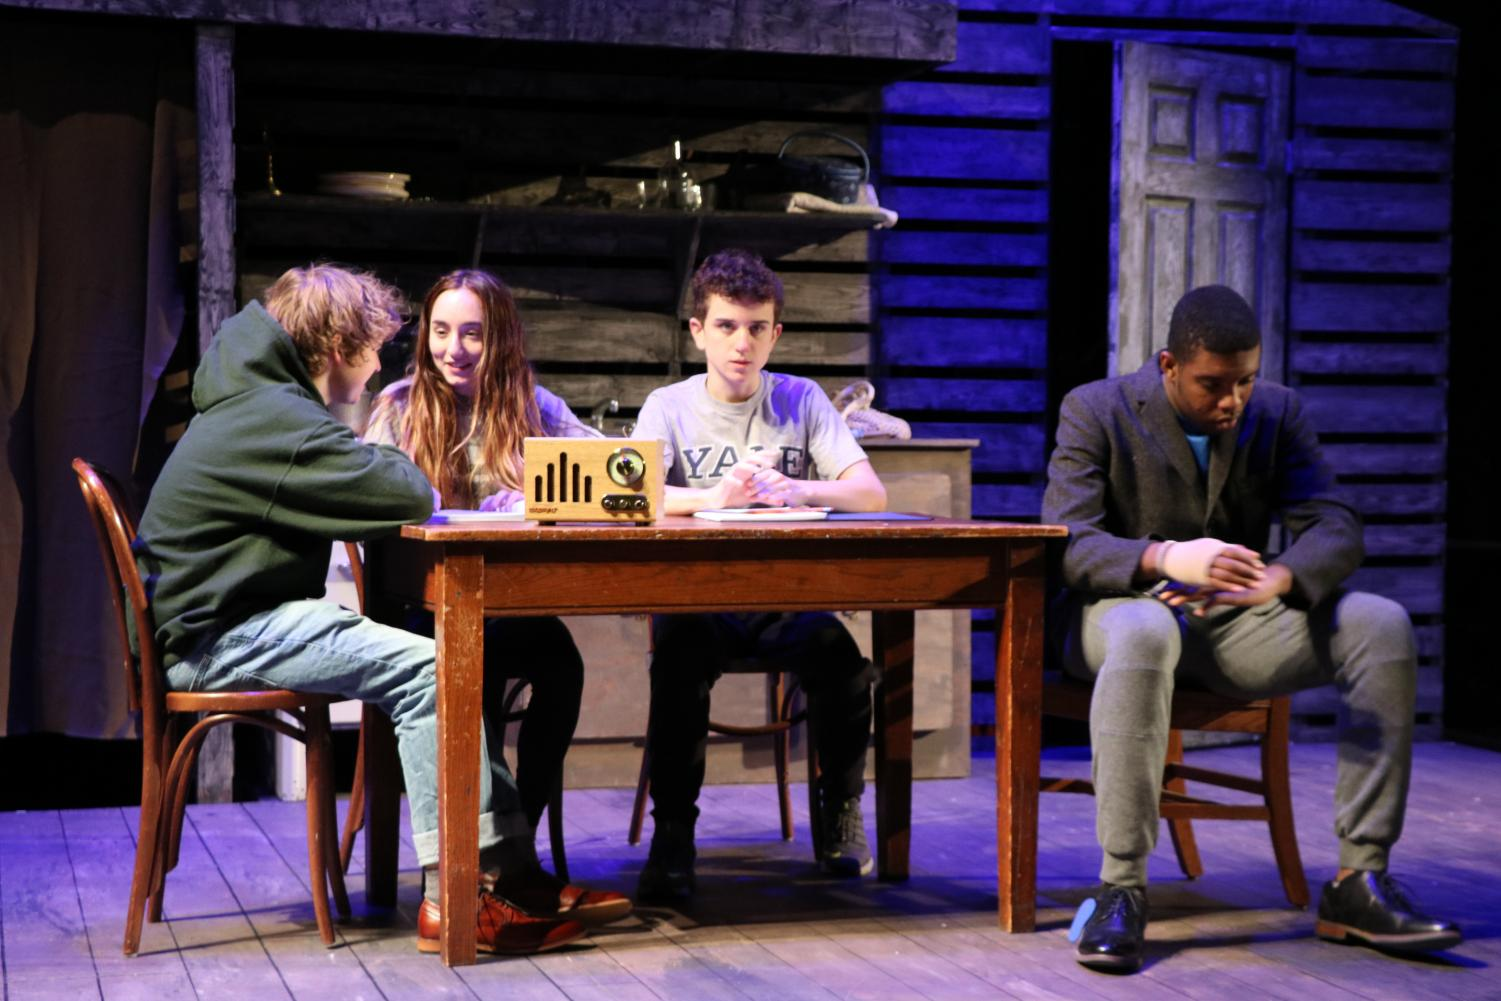 Actors rehearse a scene from The Diary of Anne Frank